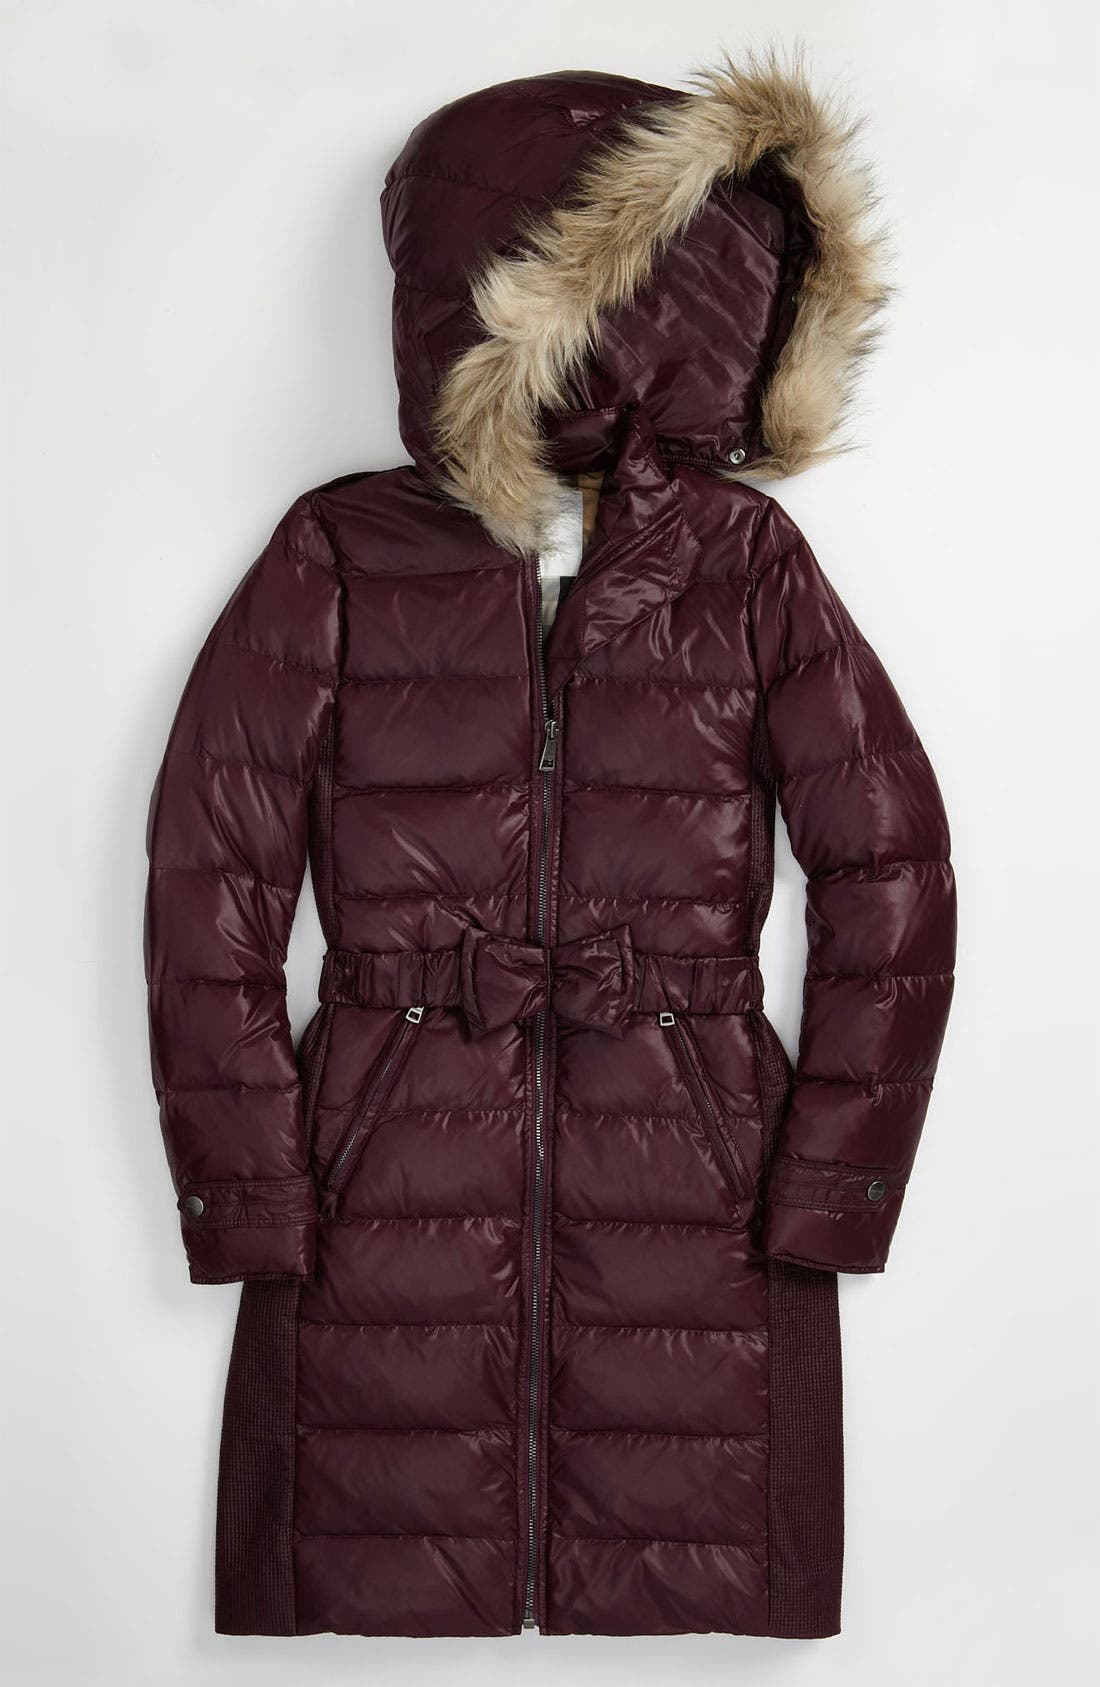 Alternate Image 1 Selected - Burberry Down Filled Puffer Jacket (Big Girls)